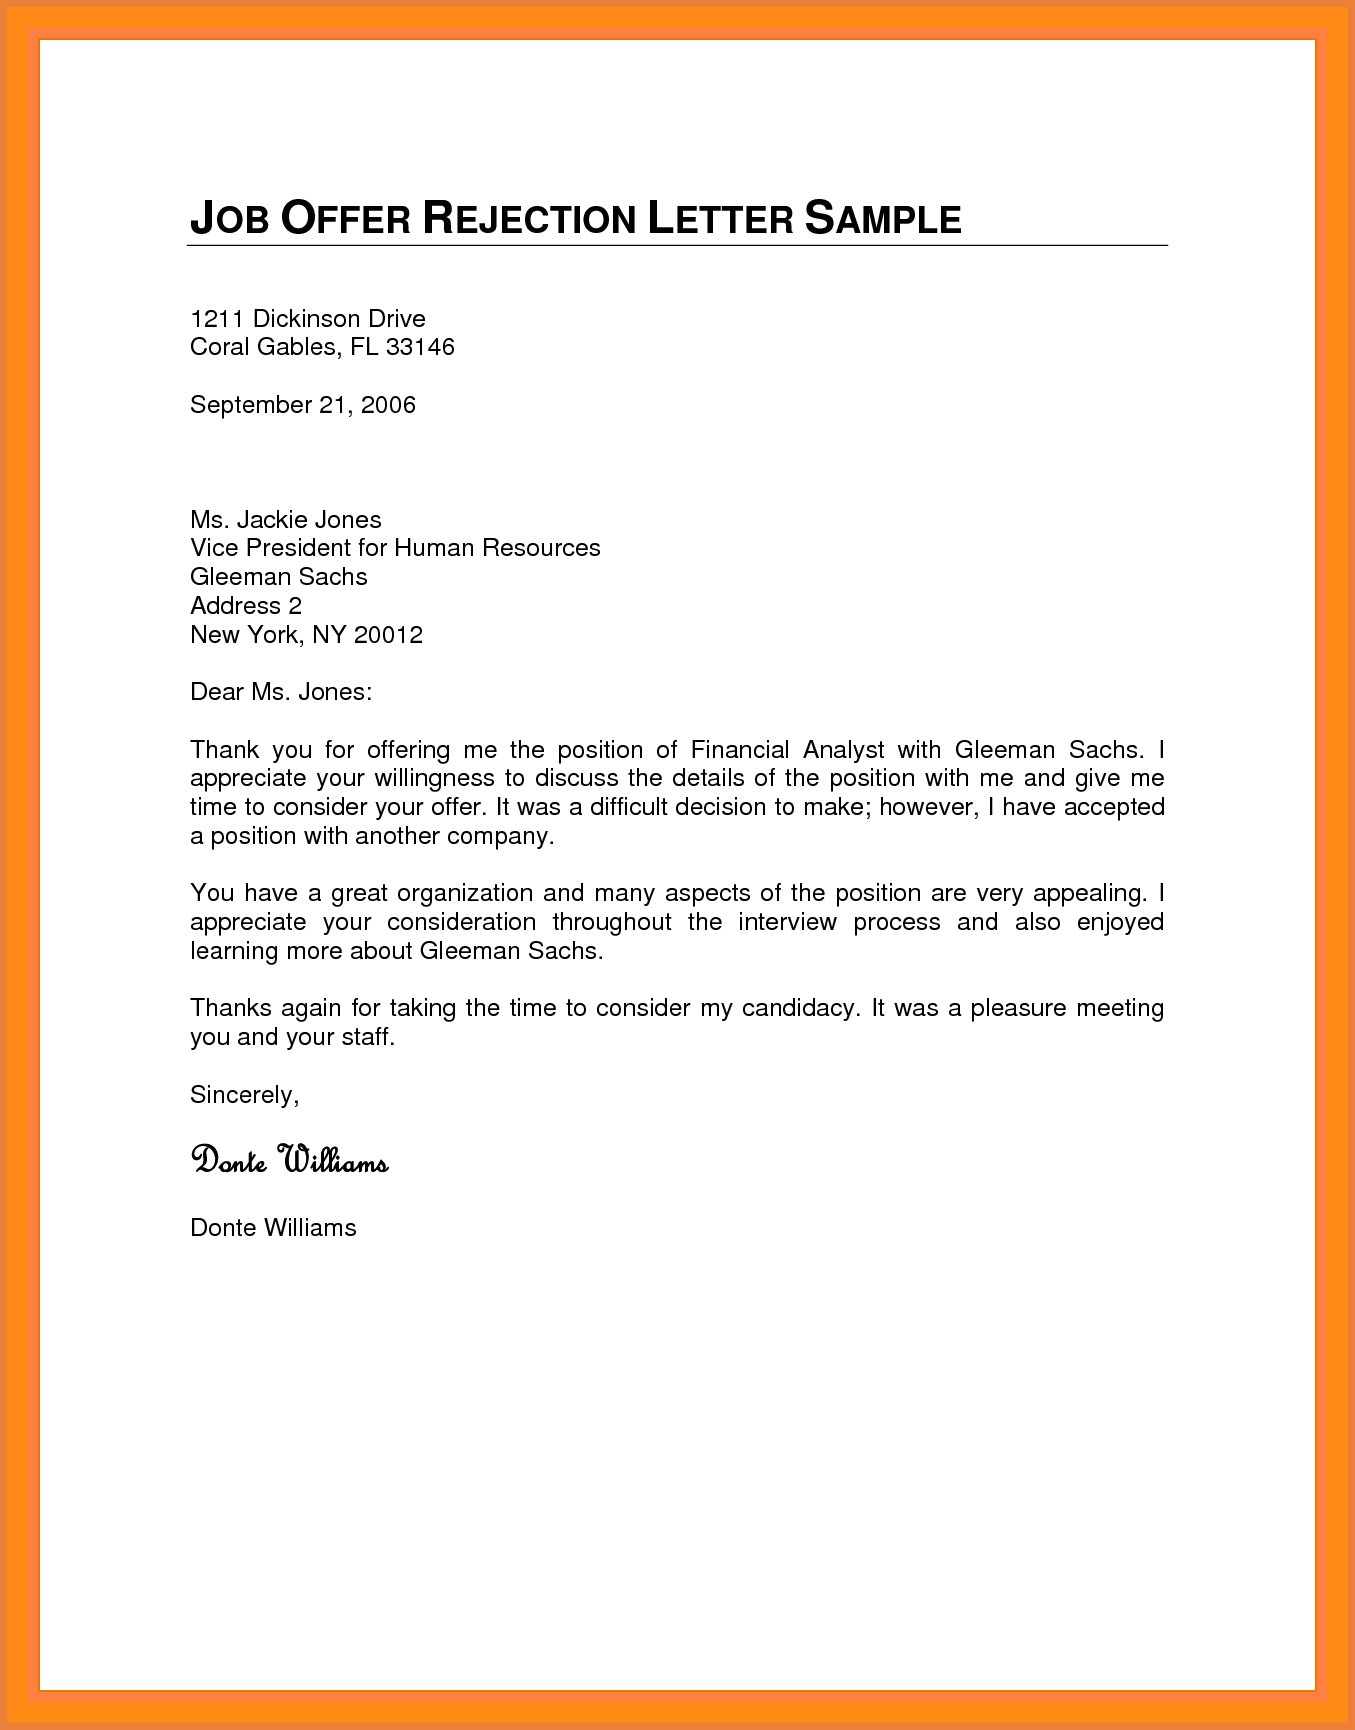 job offer decline letter template decline job fer letter imposing thanks letter for job fer